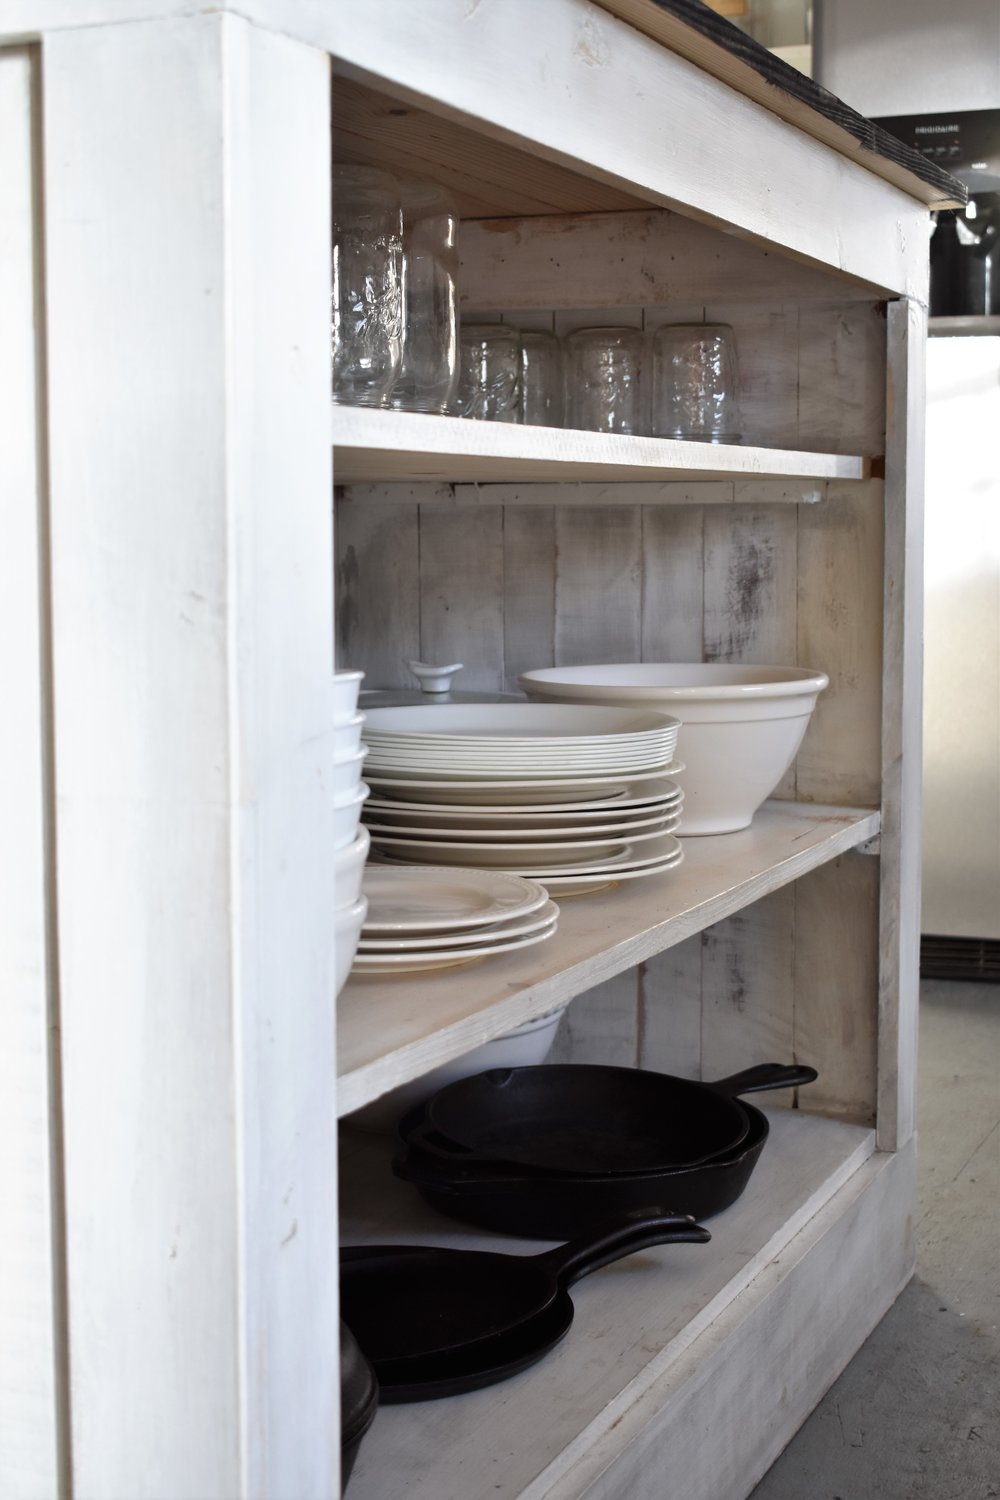 Lodge Cast Iron Cookware, Mason Jars and White dishes